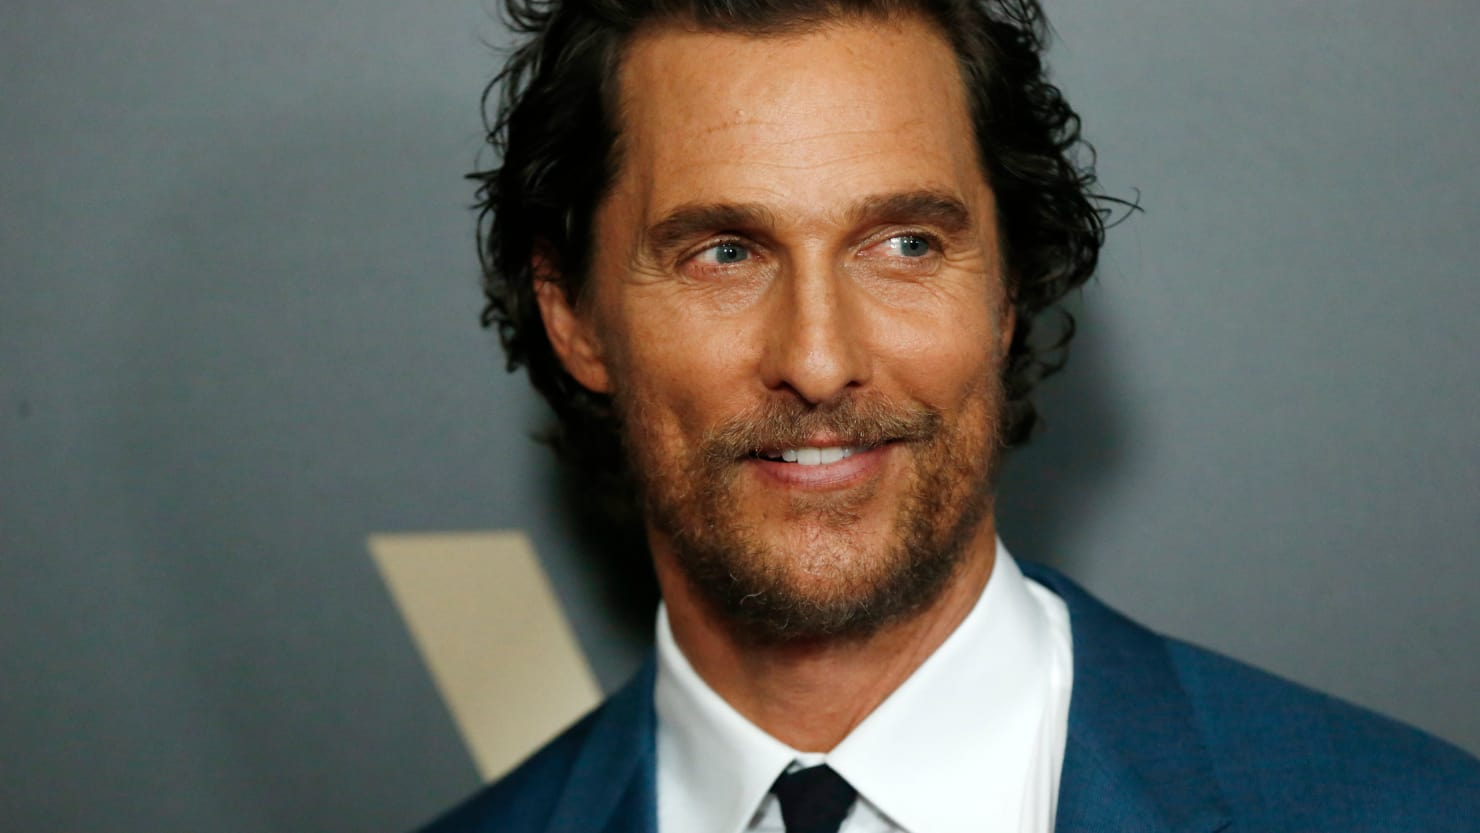 Matthew McConaughey at Texas Gun Control March Give Up Your Assault Weapons